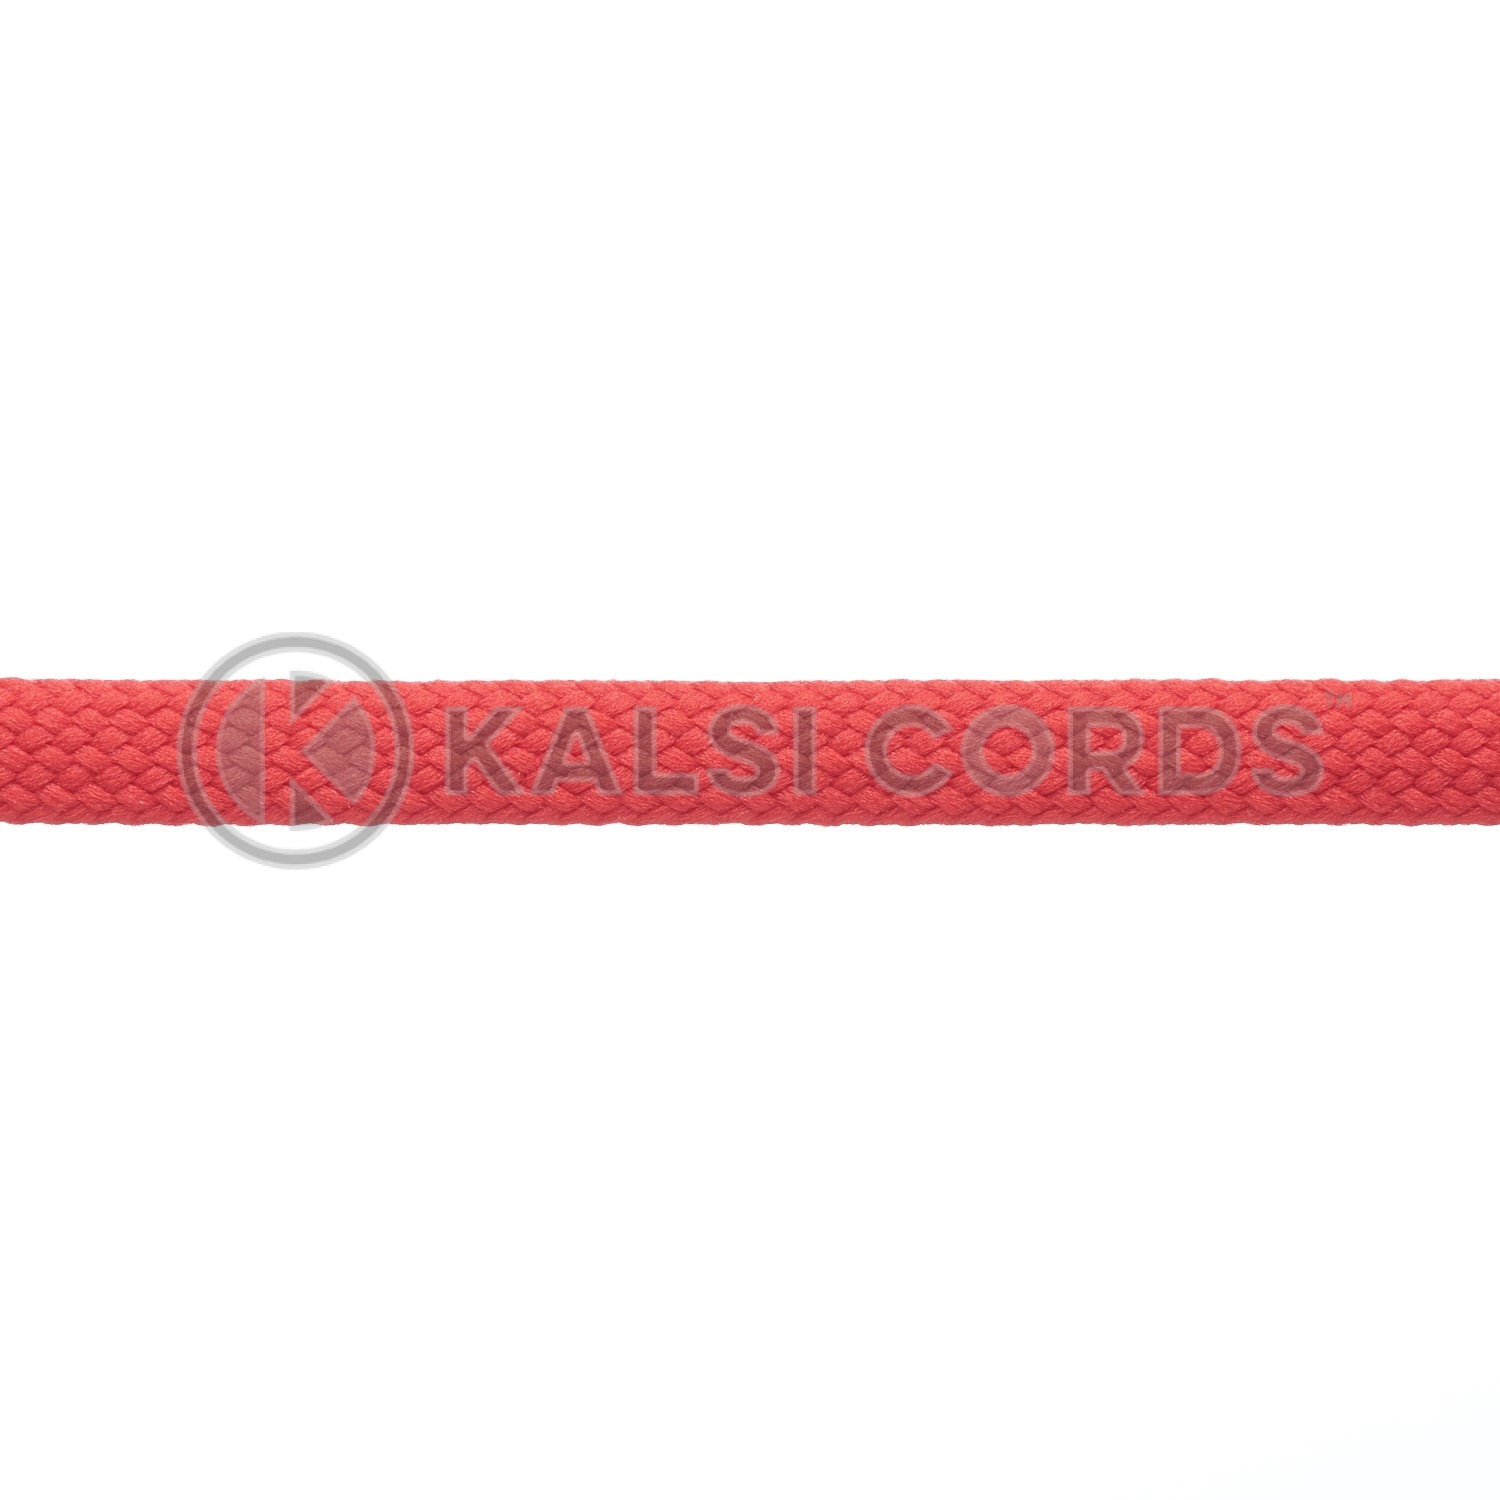 9mm Flat Shoe Laces Tubular Rose Madder Red PG655 Sports Trainers Boots Footwear Drawstring Drawcord